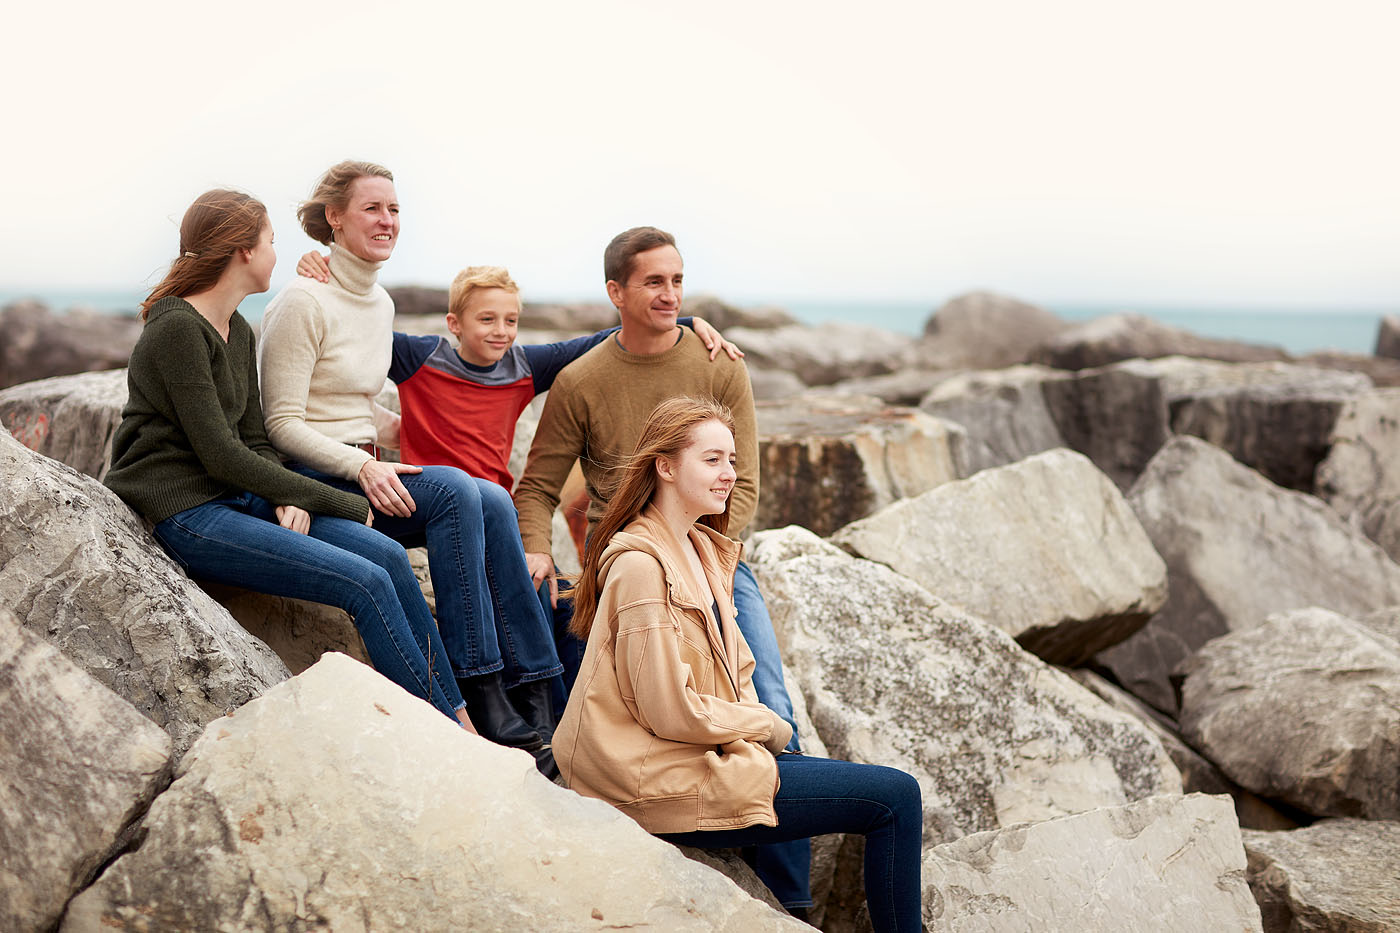 Rosewood-Beach-Family-Session-028